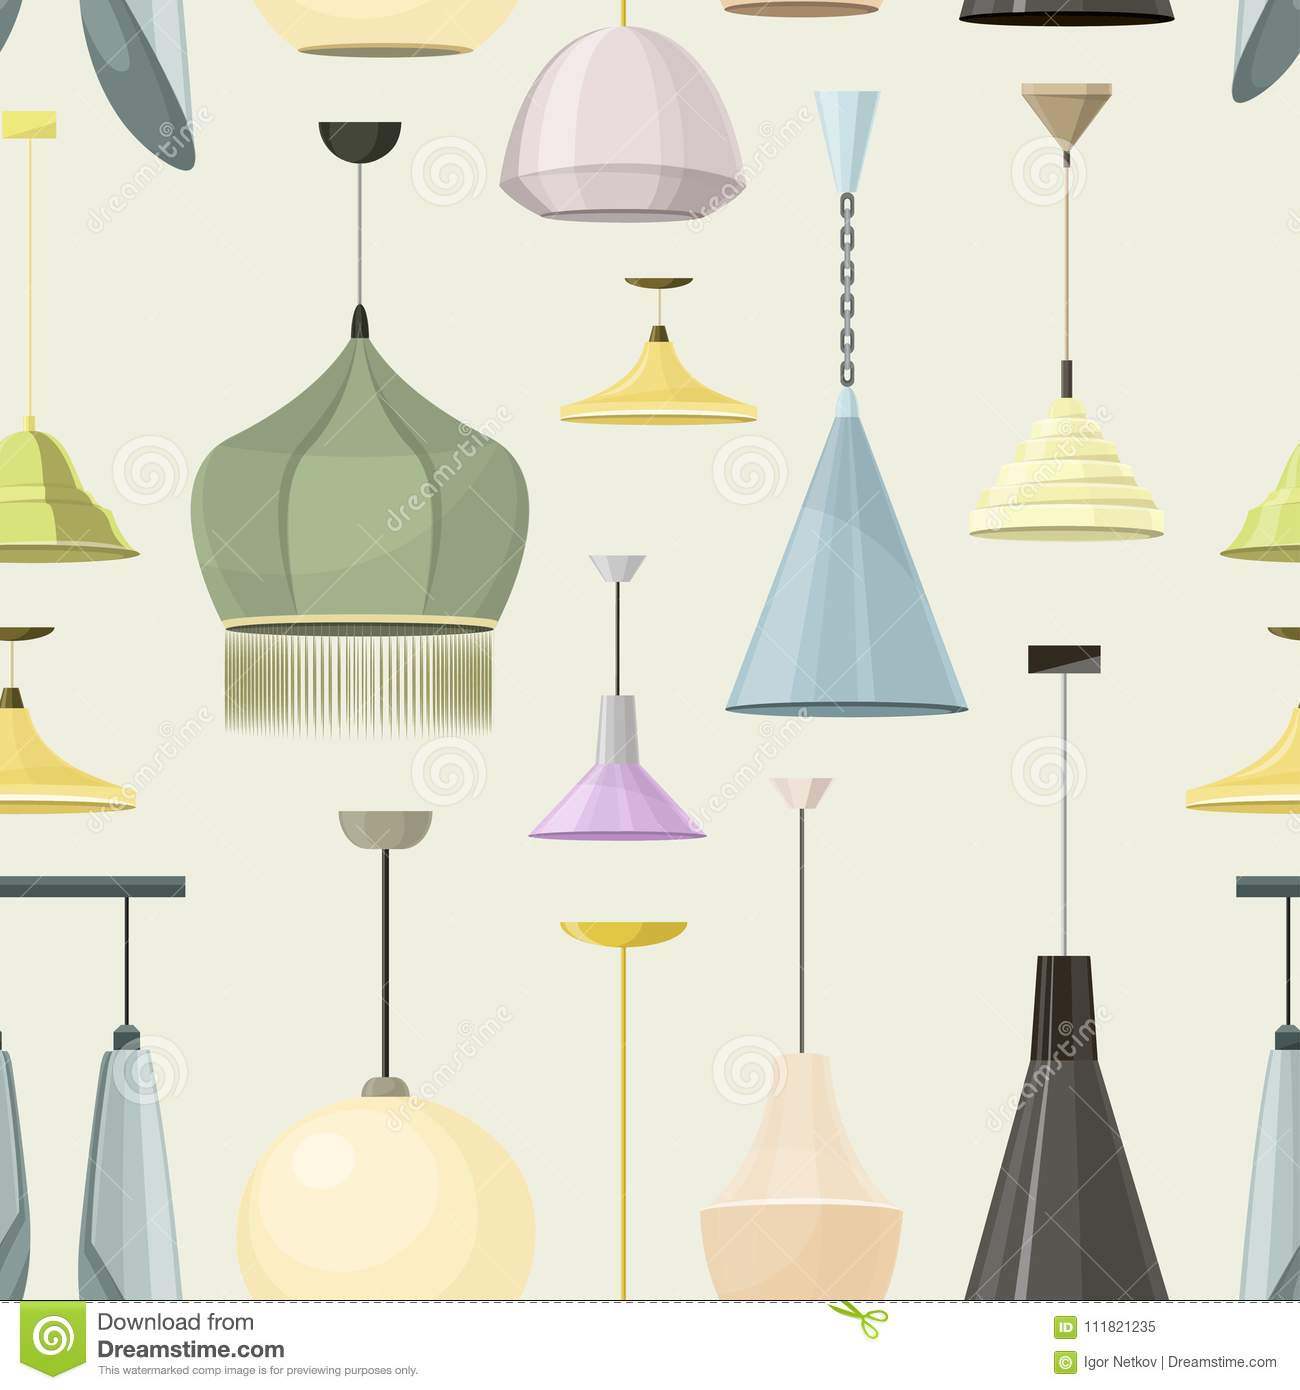 Lamps Sign Set For Interior Pattern Electricity Floor Lamp And Table Concept Home Decoration Object In Flat Style